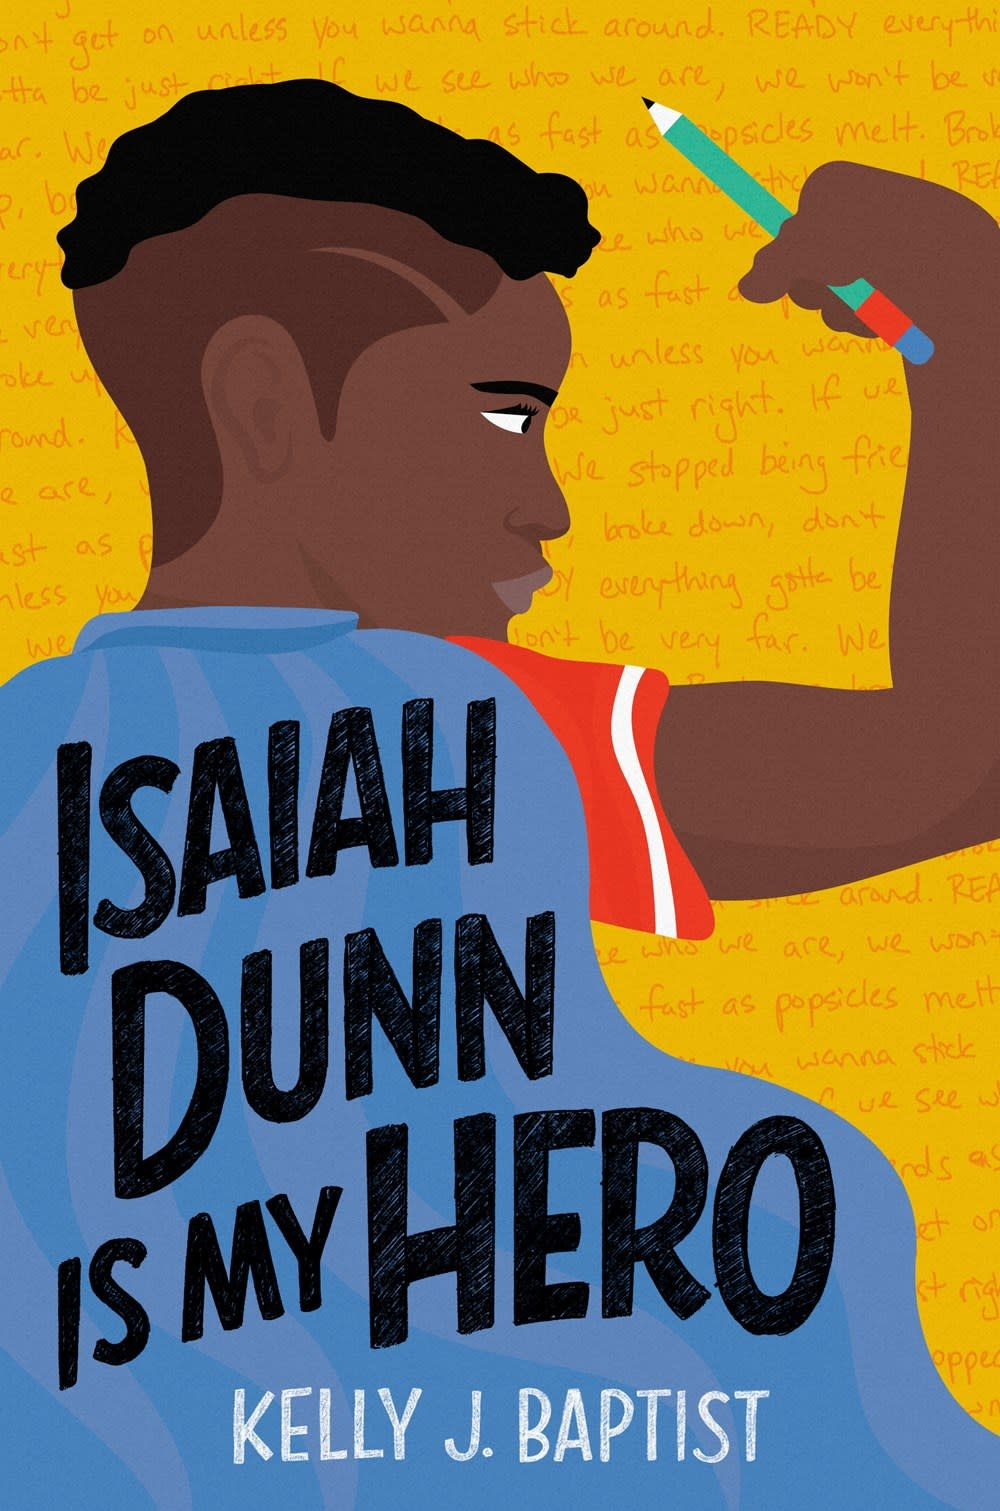 Crown Books for Young Readers Isaiah Dunn is My Hero